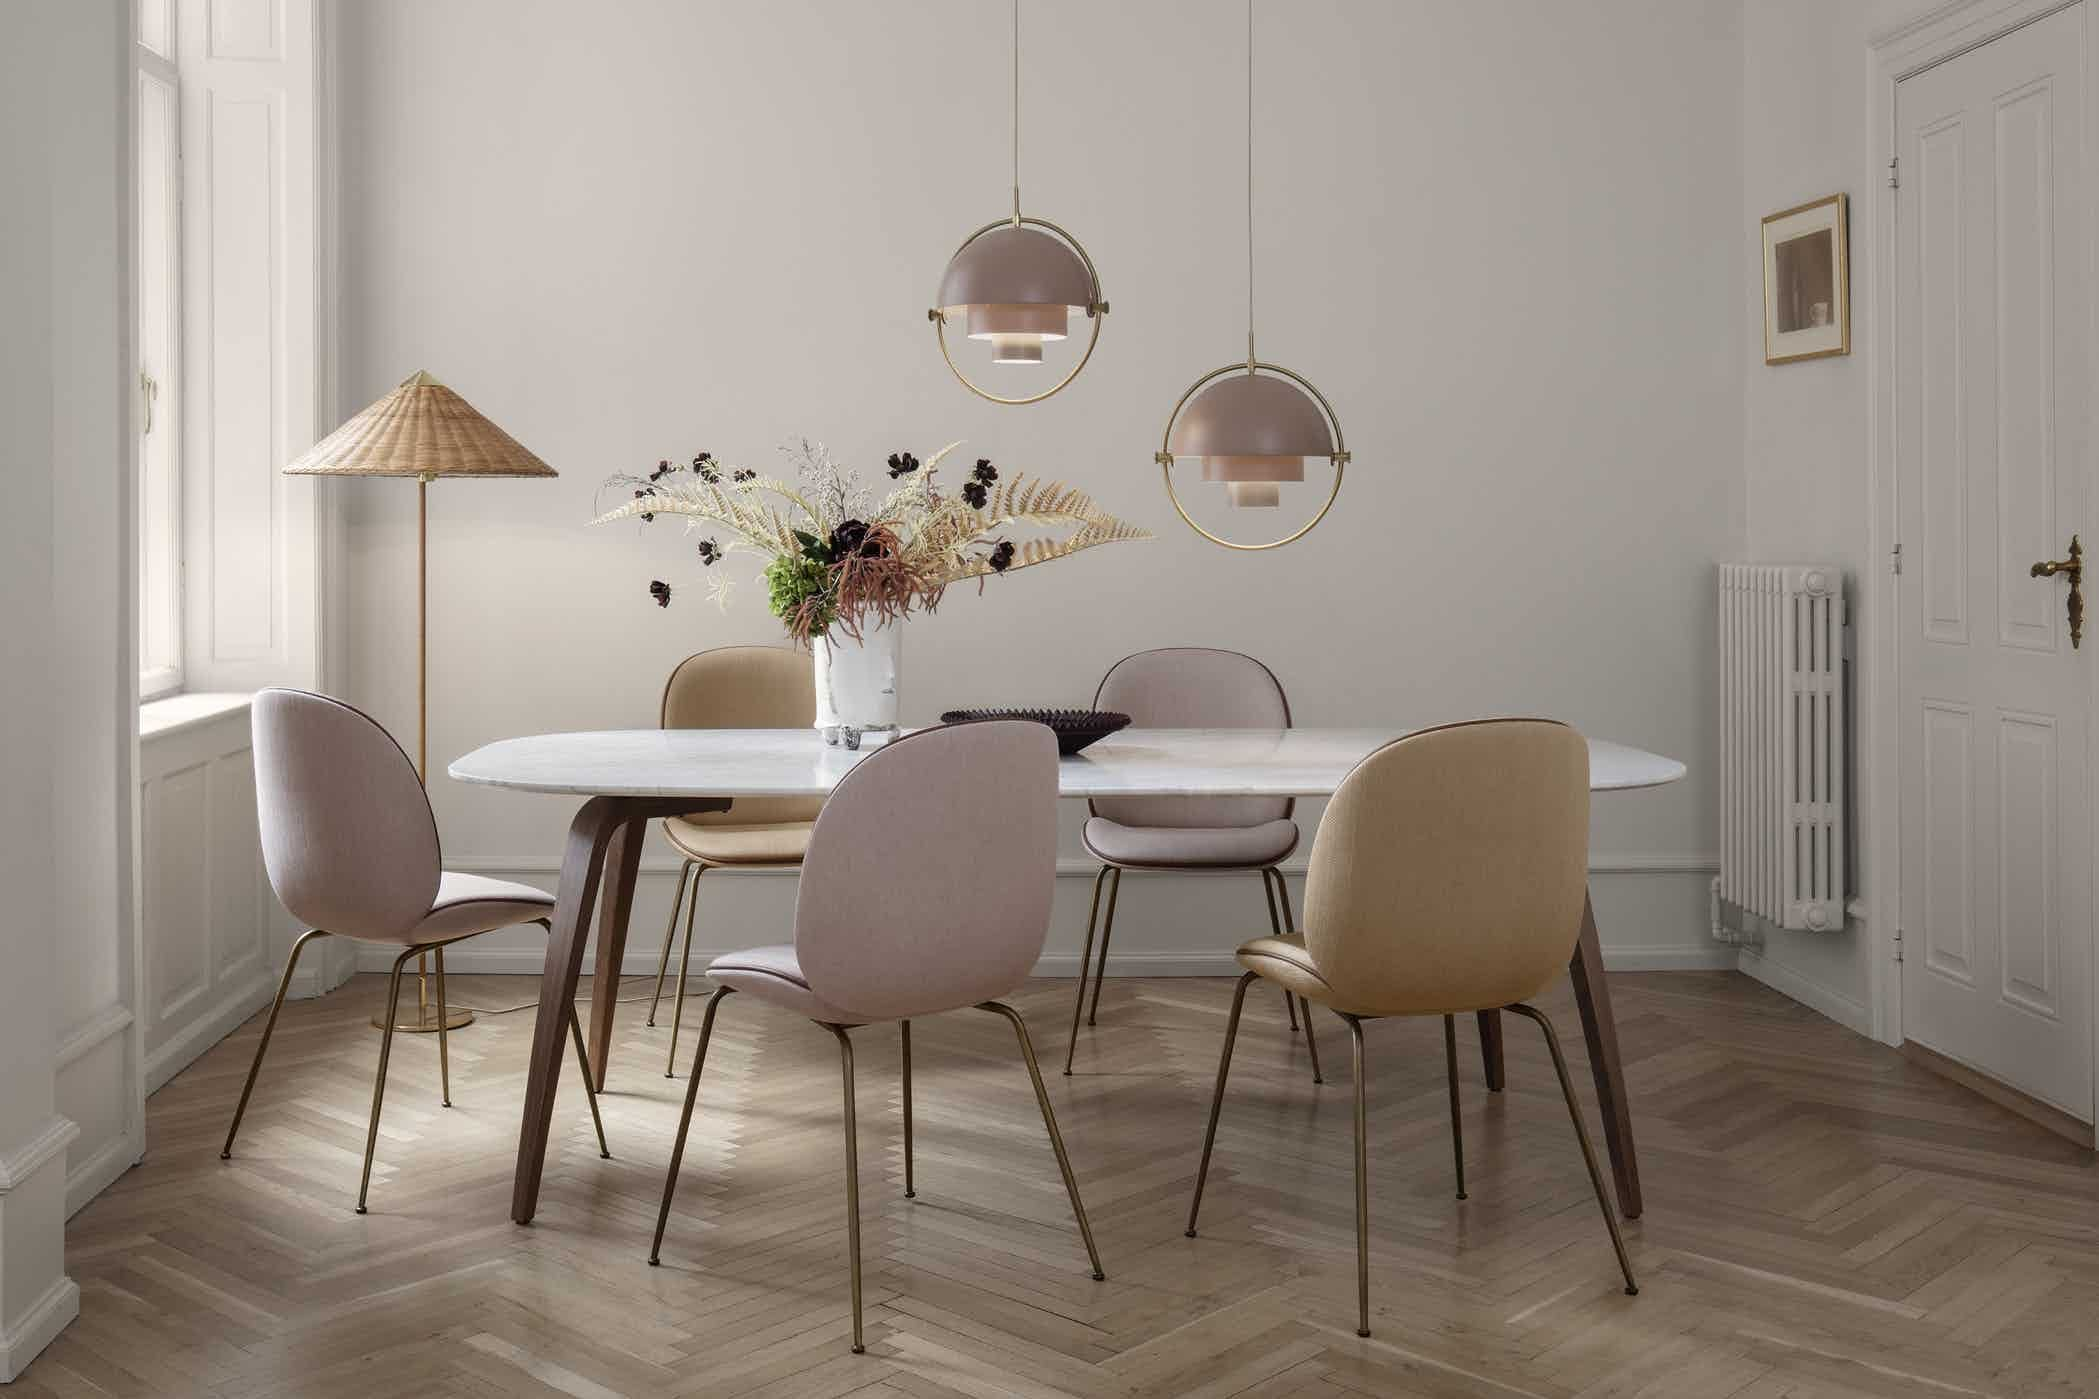 Gubi Dining Table By Gubi Now Available At Haute Living Gubi